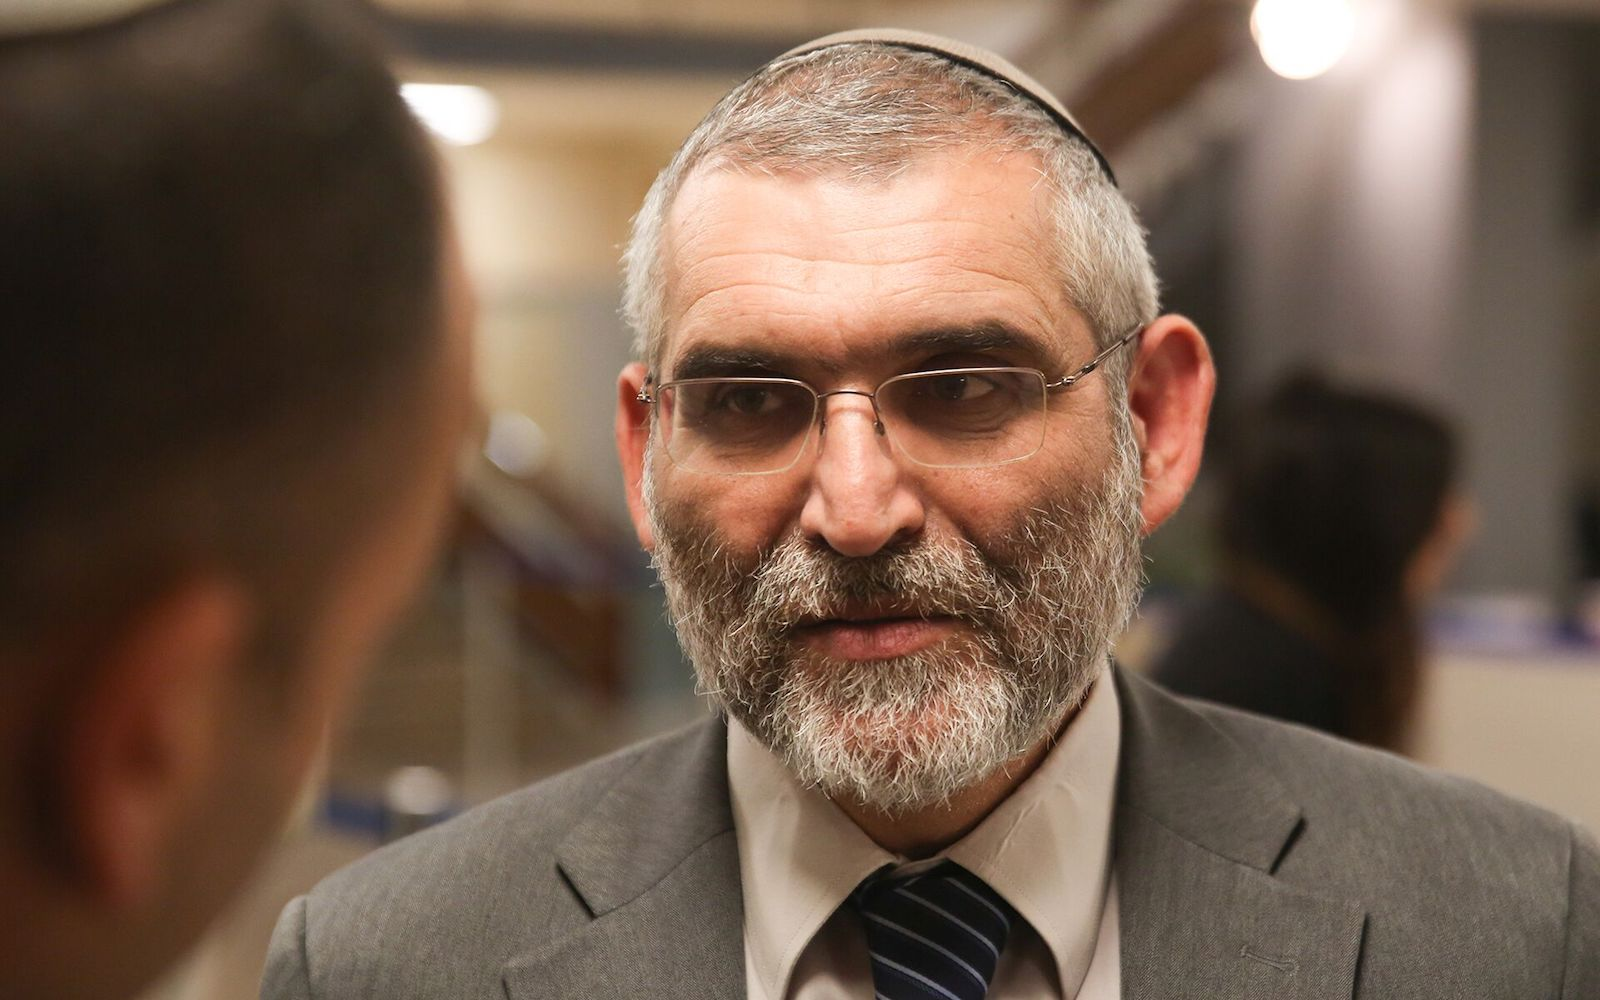 Israel's far-right Otzma party is dangerous. I know because I banned its leader from the US.